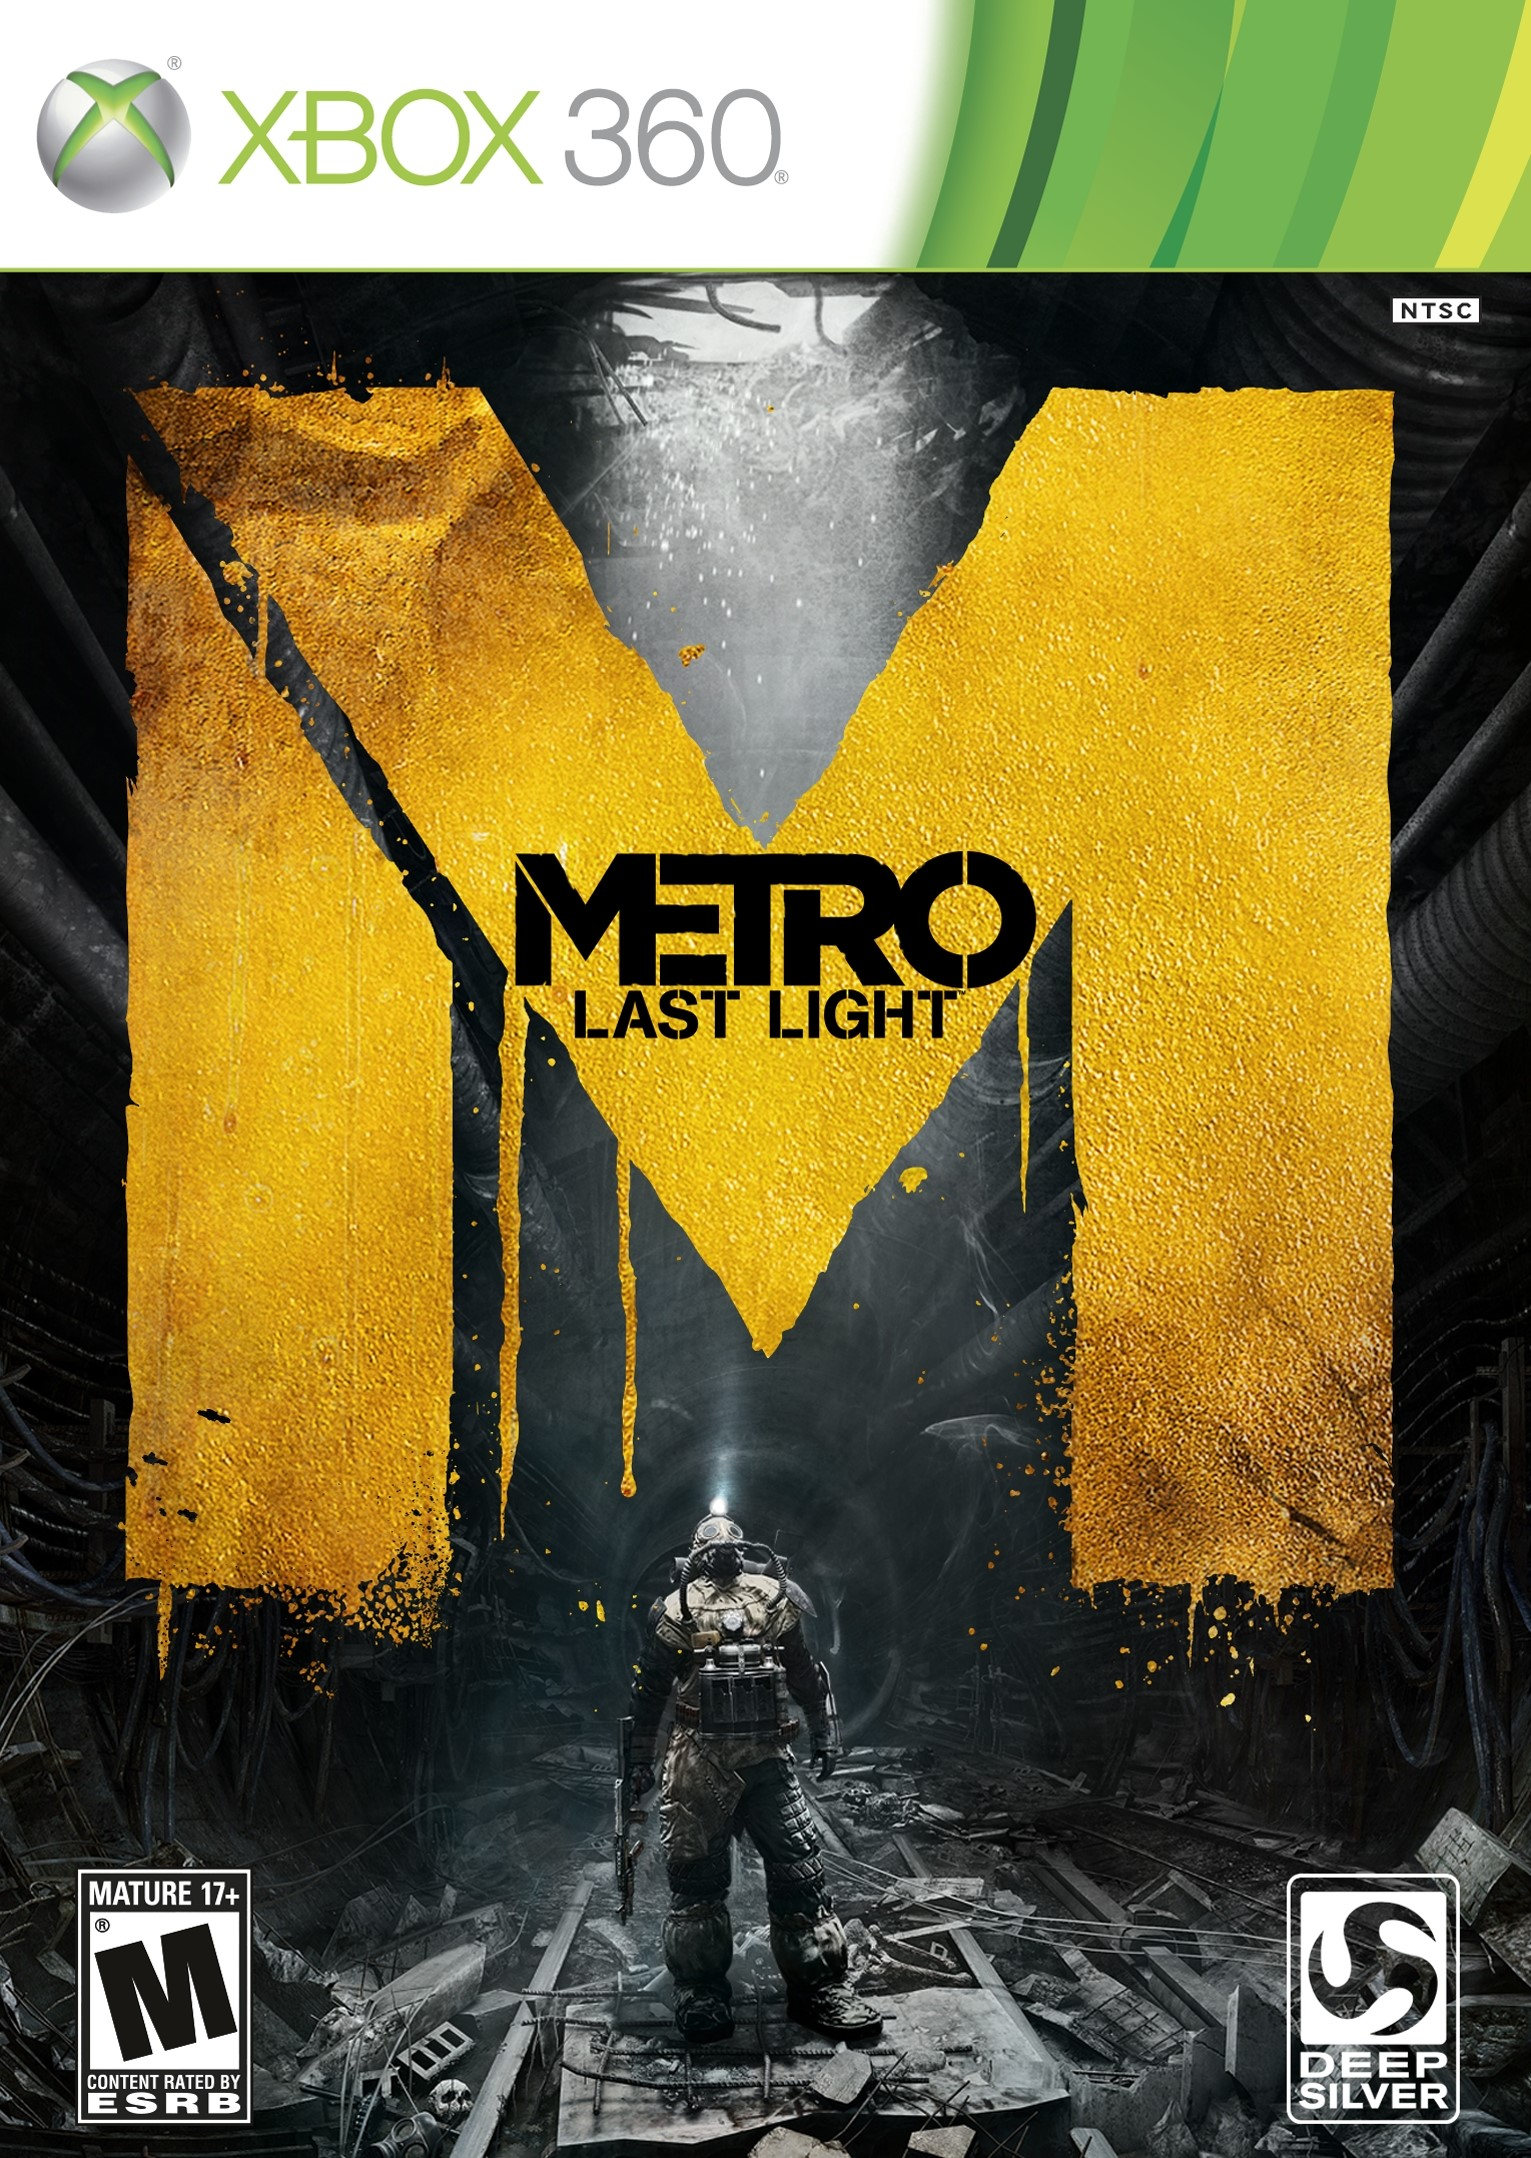 Мetro Last Light + 6 games | Xbox 360 | Shared account�